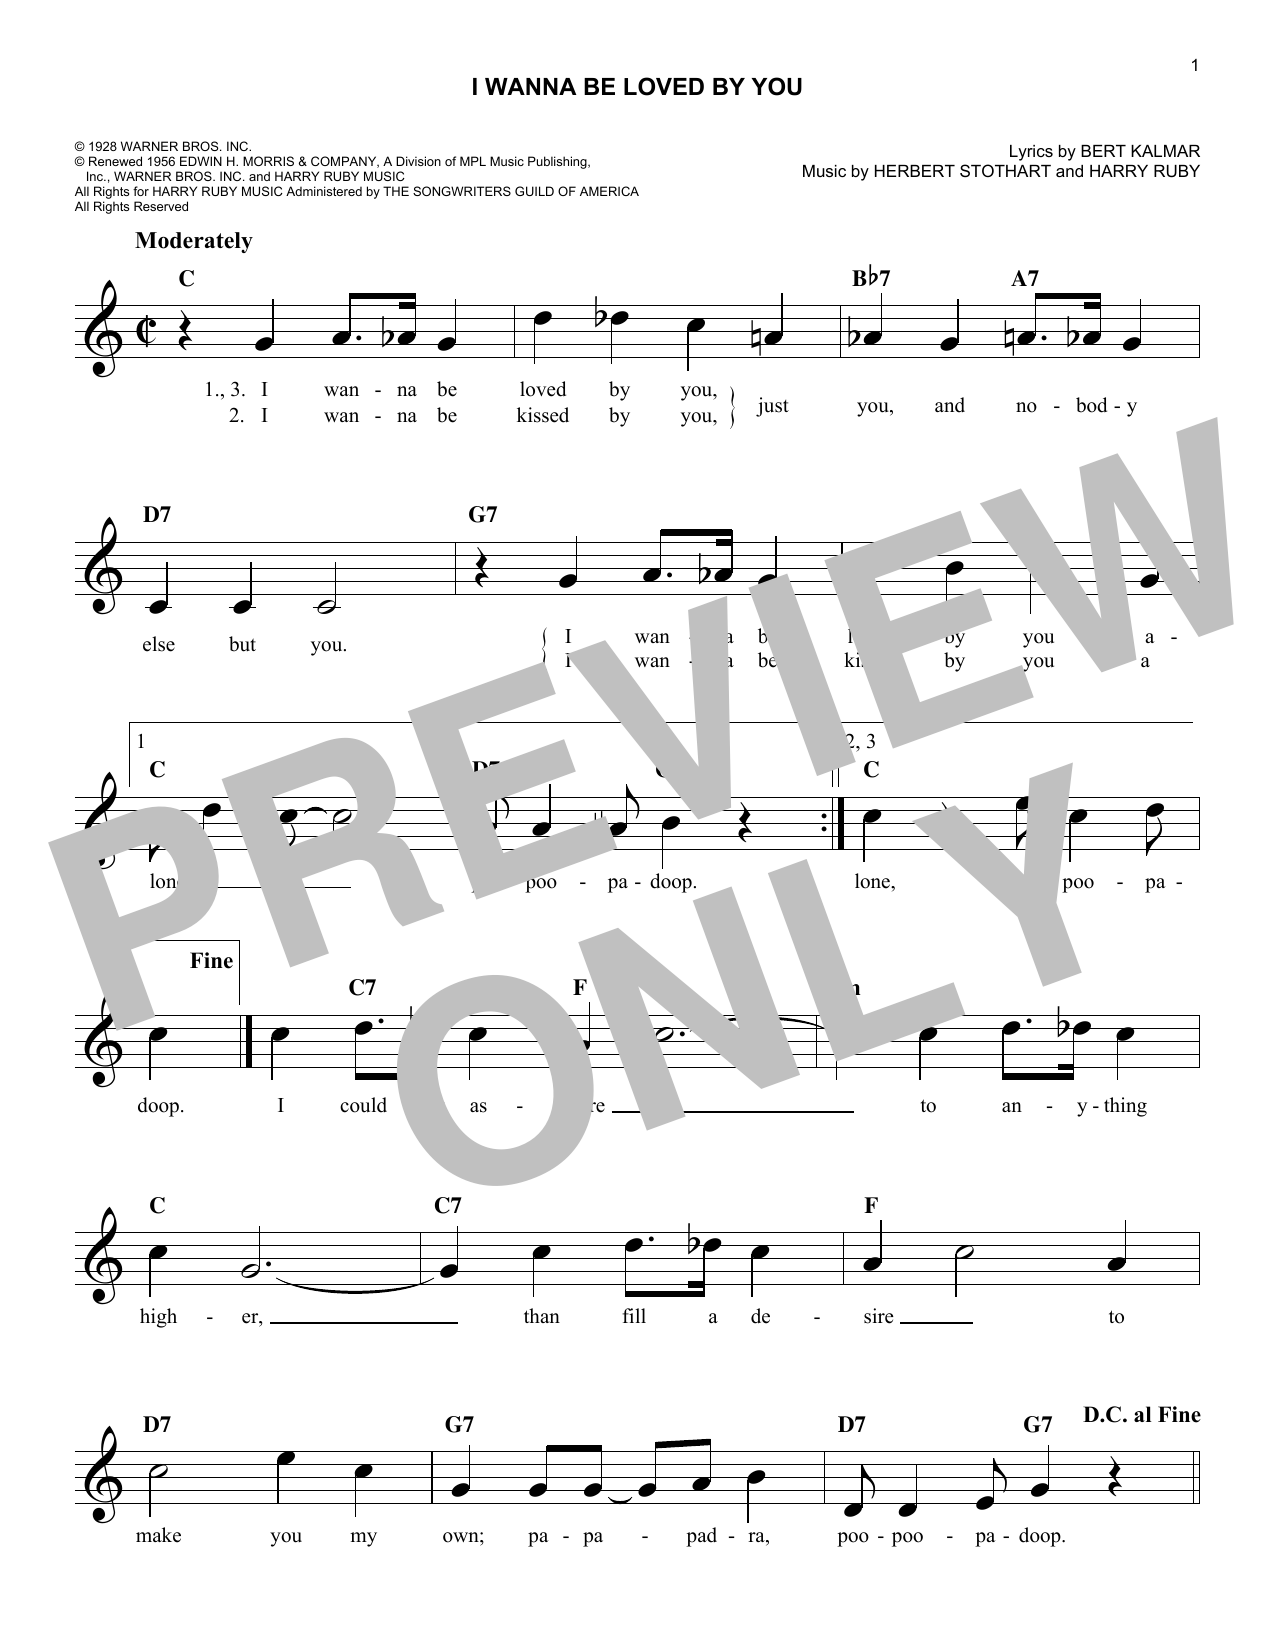 Herbert Stothart I Wanna Be Loved By You sheet music notes and chords. Download Printable PDF.